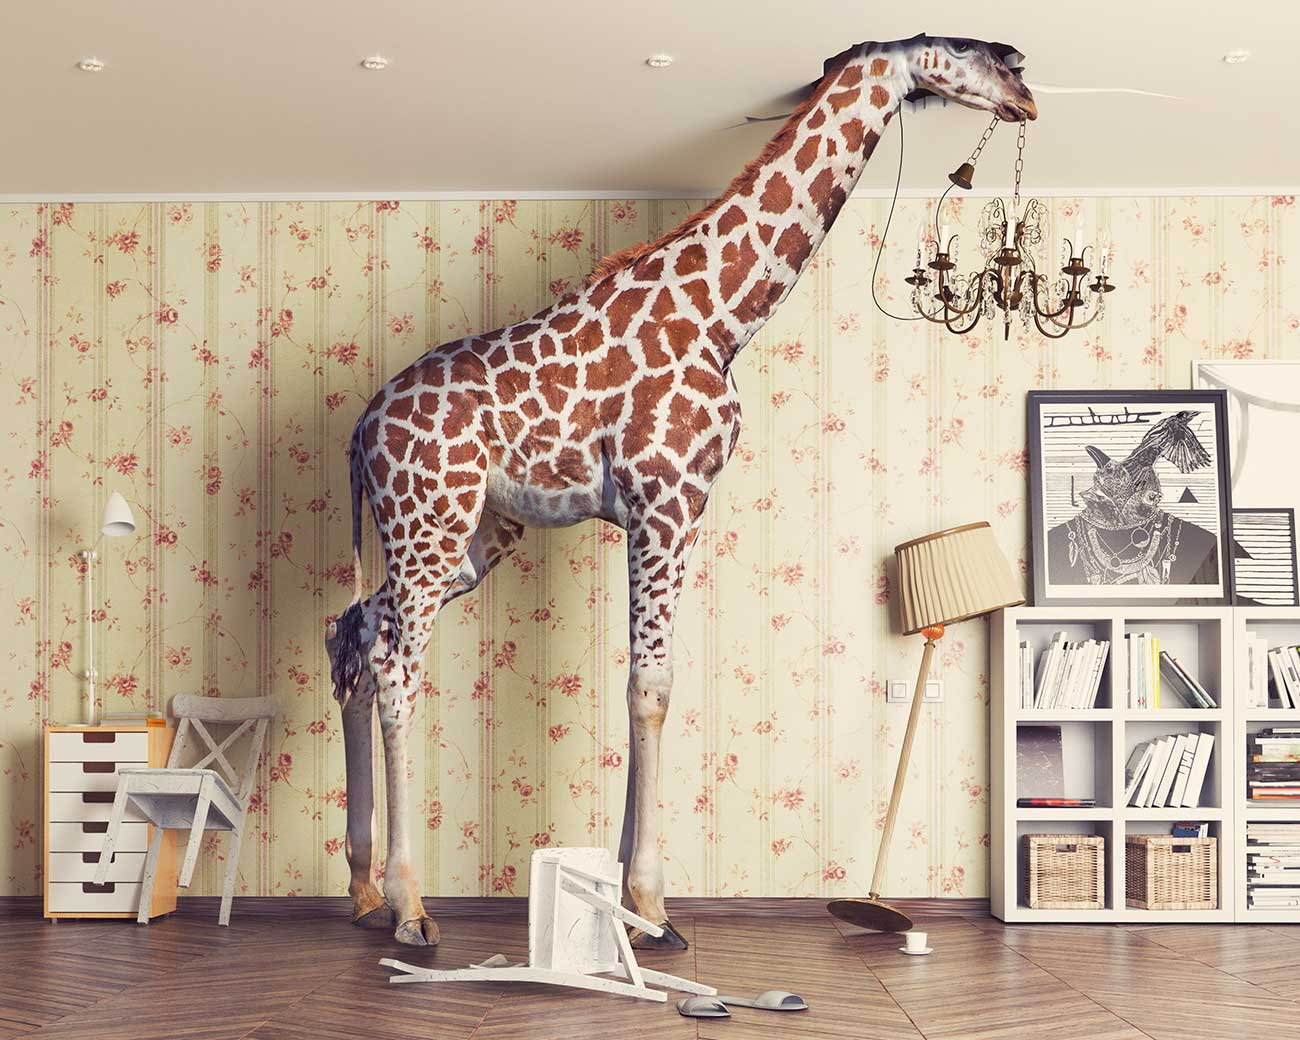 Giraffe in room with head through ceiling